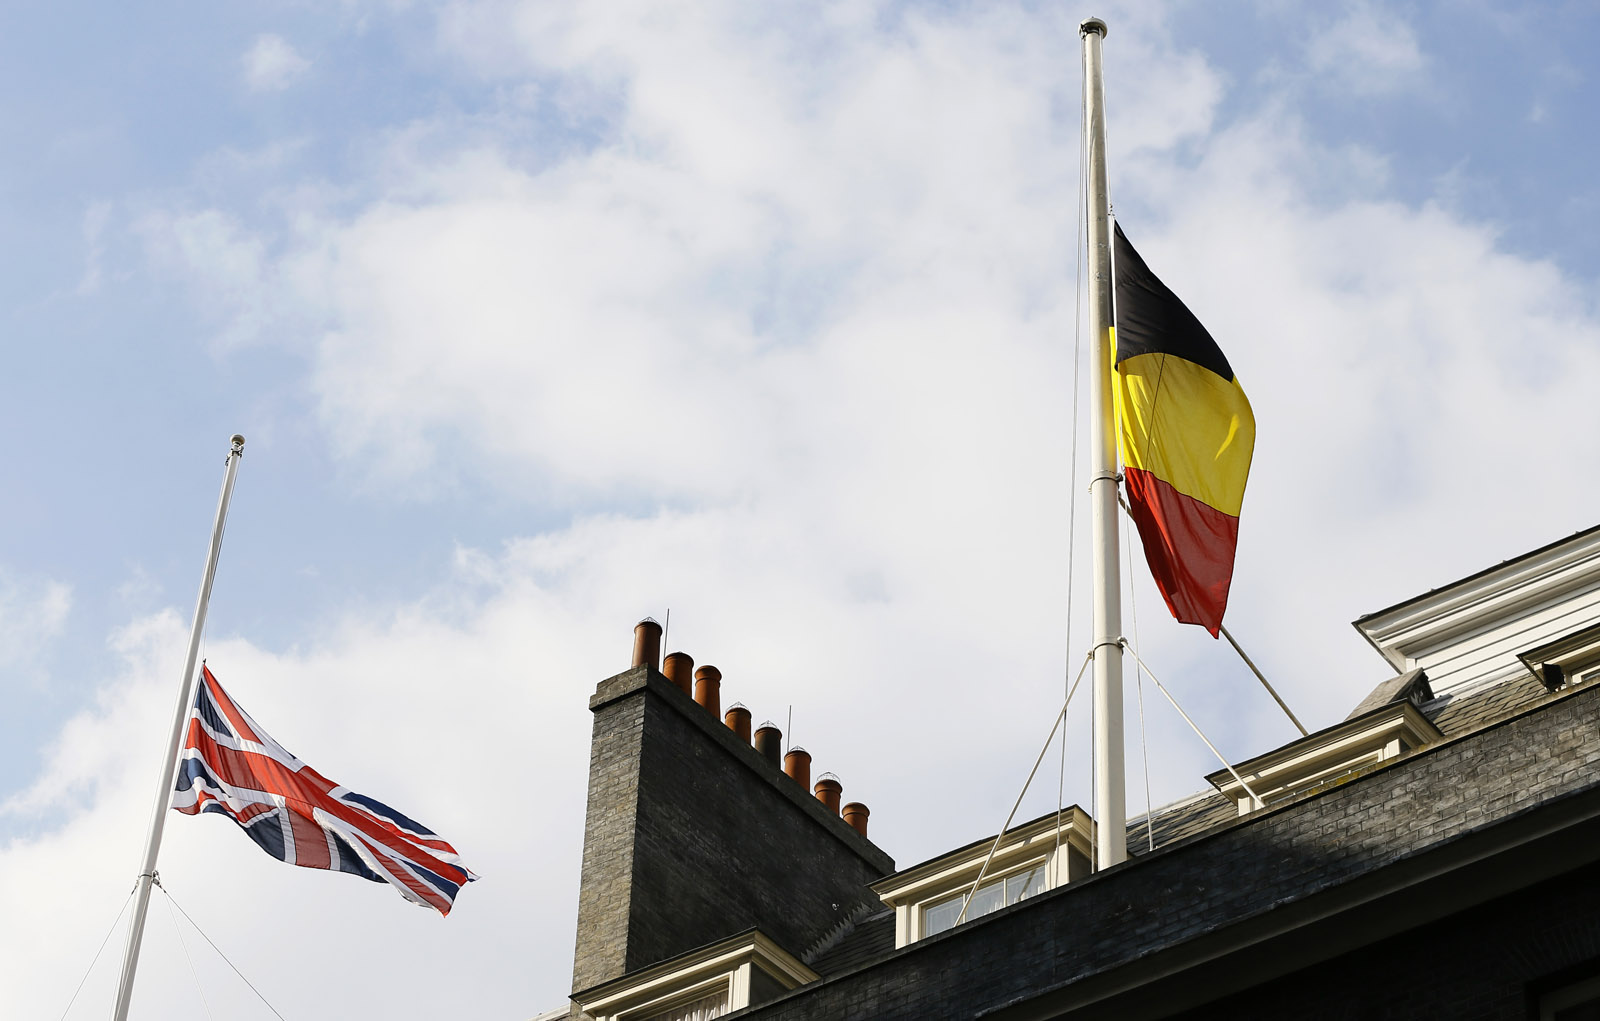 The Belgium and British flag fly at half staff above Downing Street in London, following the attacks in Brussels, Tuesday, March, 22, 2016. Authorities in Europe and beyond have tightened security at airports, on subways, at the borders and on city streets after deadly attacks Tuesday on the Brussels airport and its subway system. (AP Photo/Kirsty Wigglesworth)